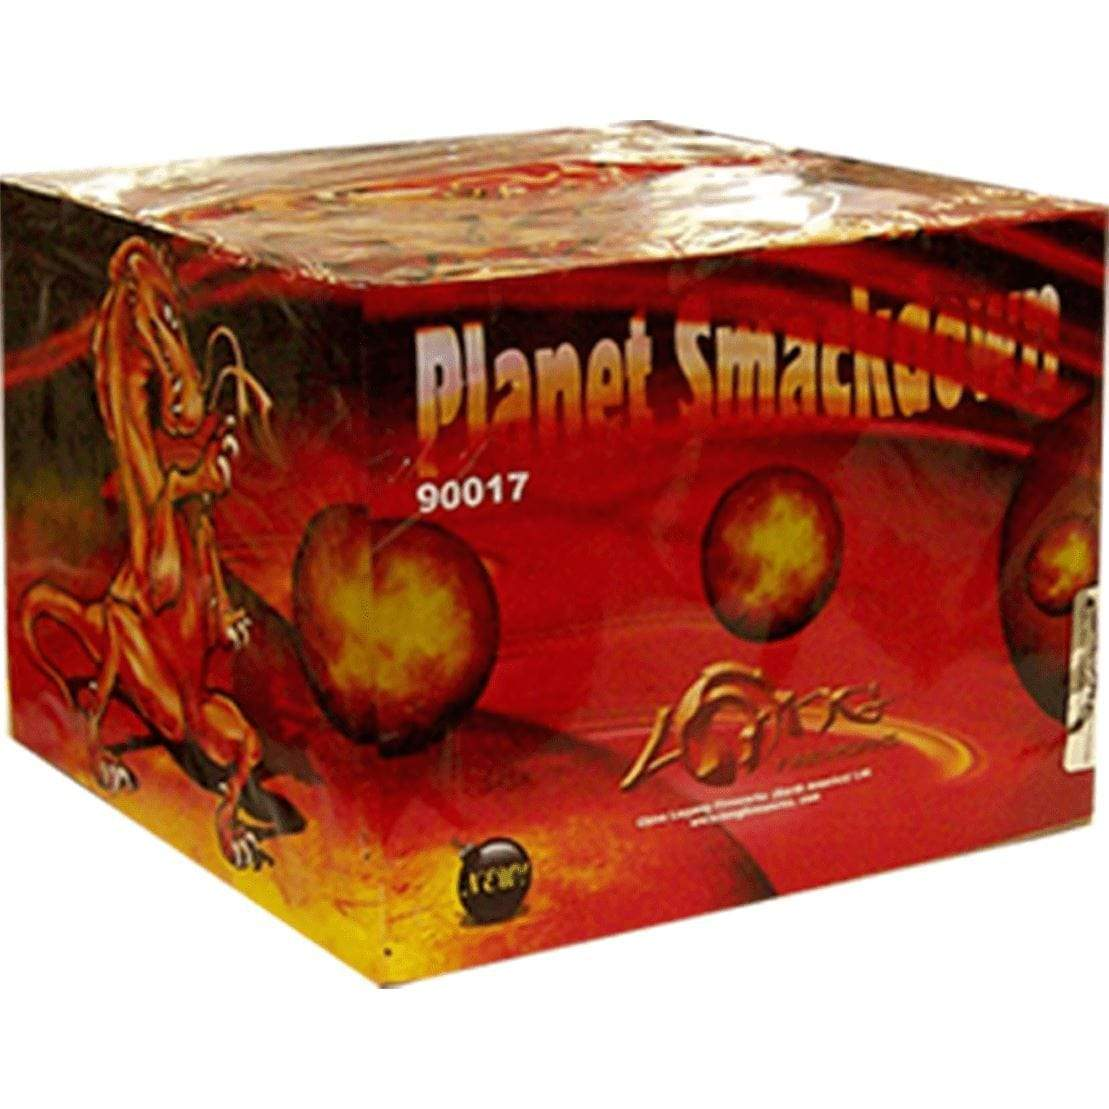 Mystical Fireworks Cakes Planet Smackdown